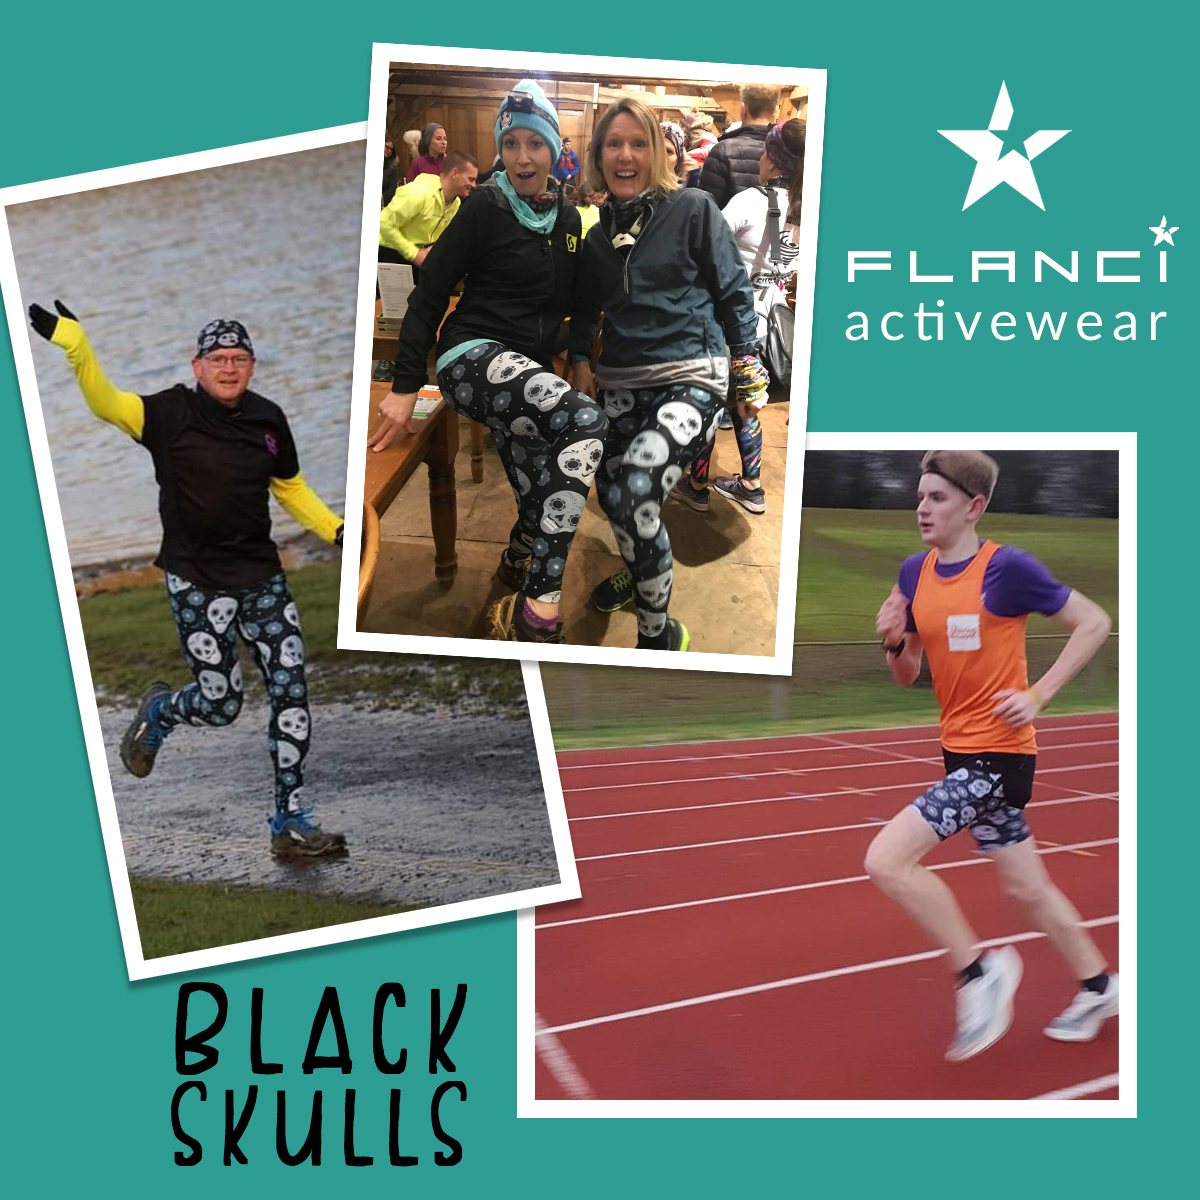 One pattern - three ways!  Our Black Skull design is perfect for men and women's activewear.  Being monochrome it works well with all your various tops but is so much more fun than boring plain black running tights. http://www.flanciactivewear.co.ukpic.twitter.com/DylK8BxXtt